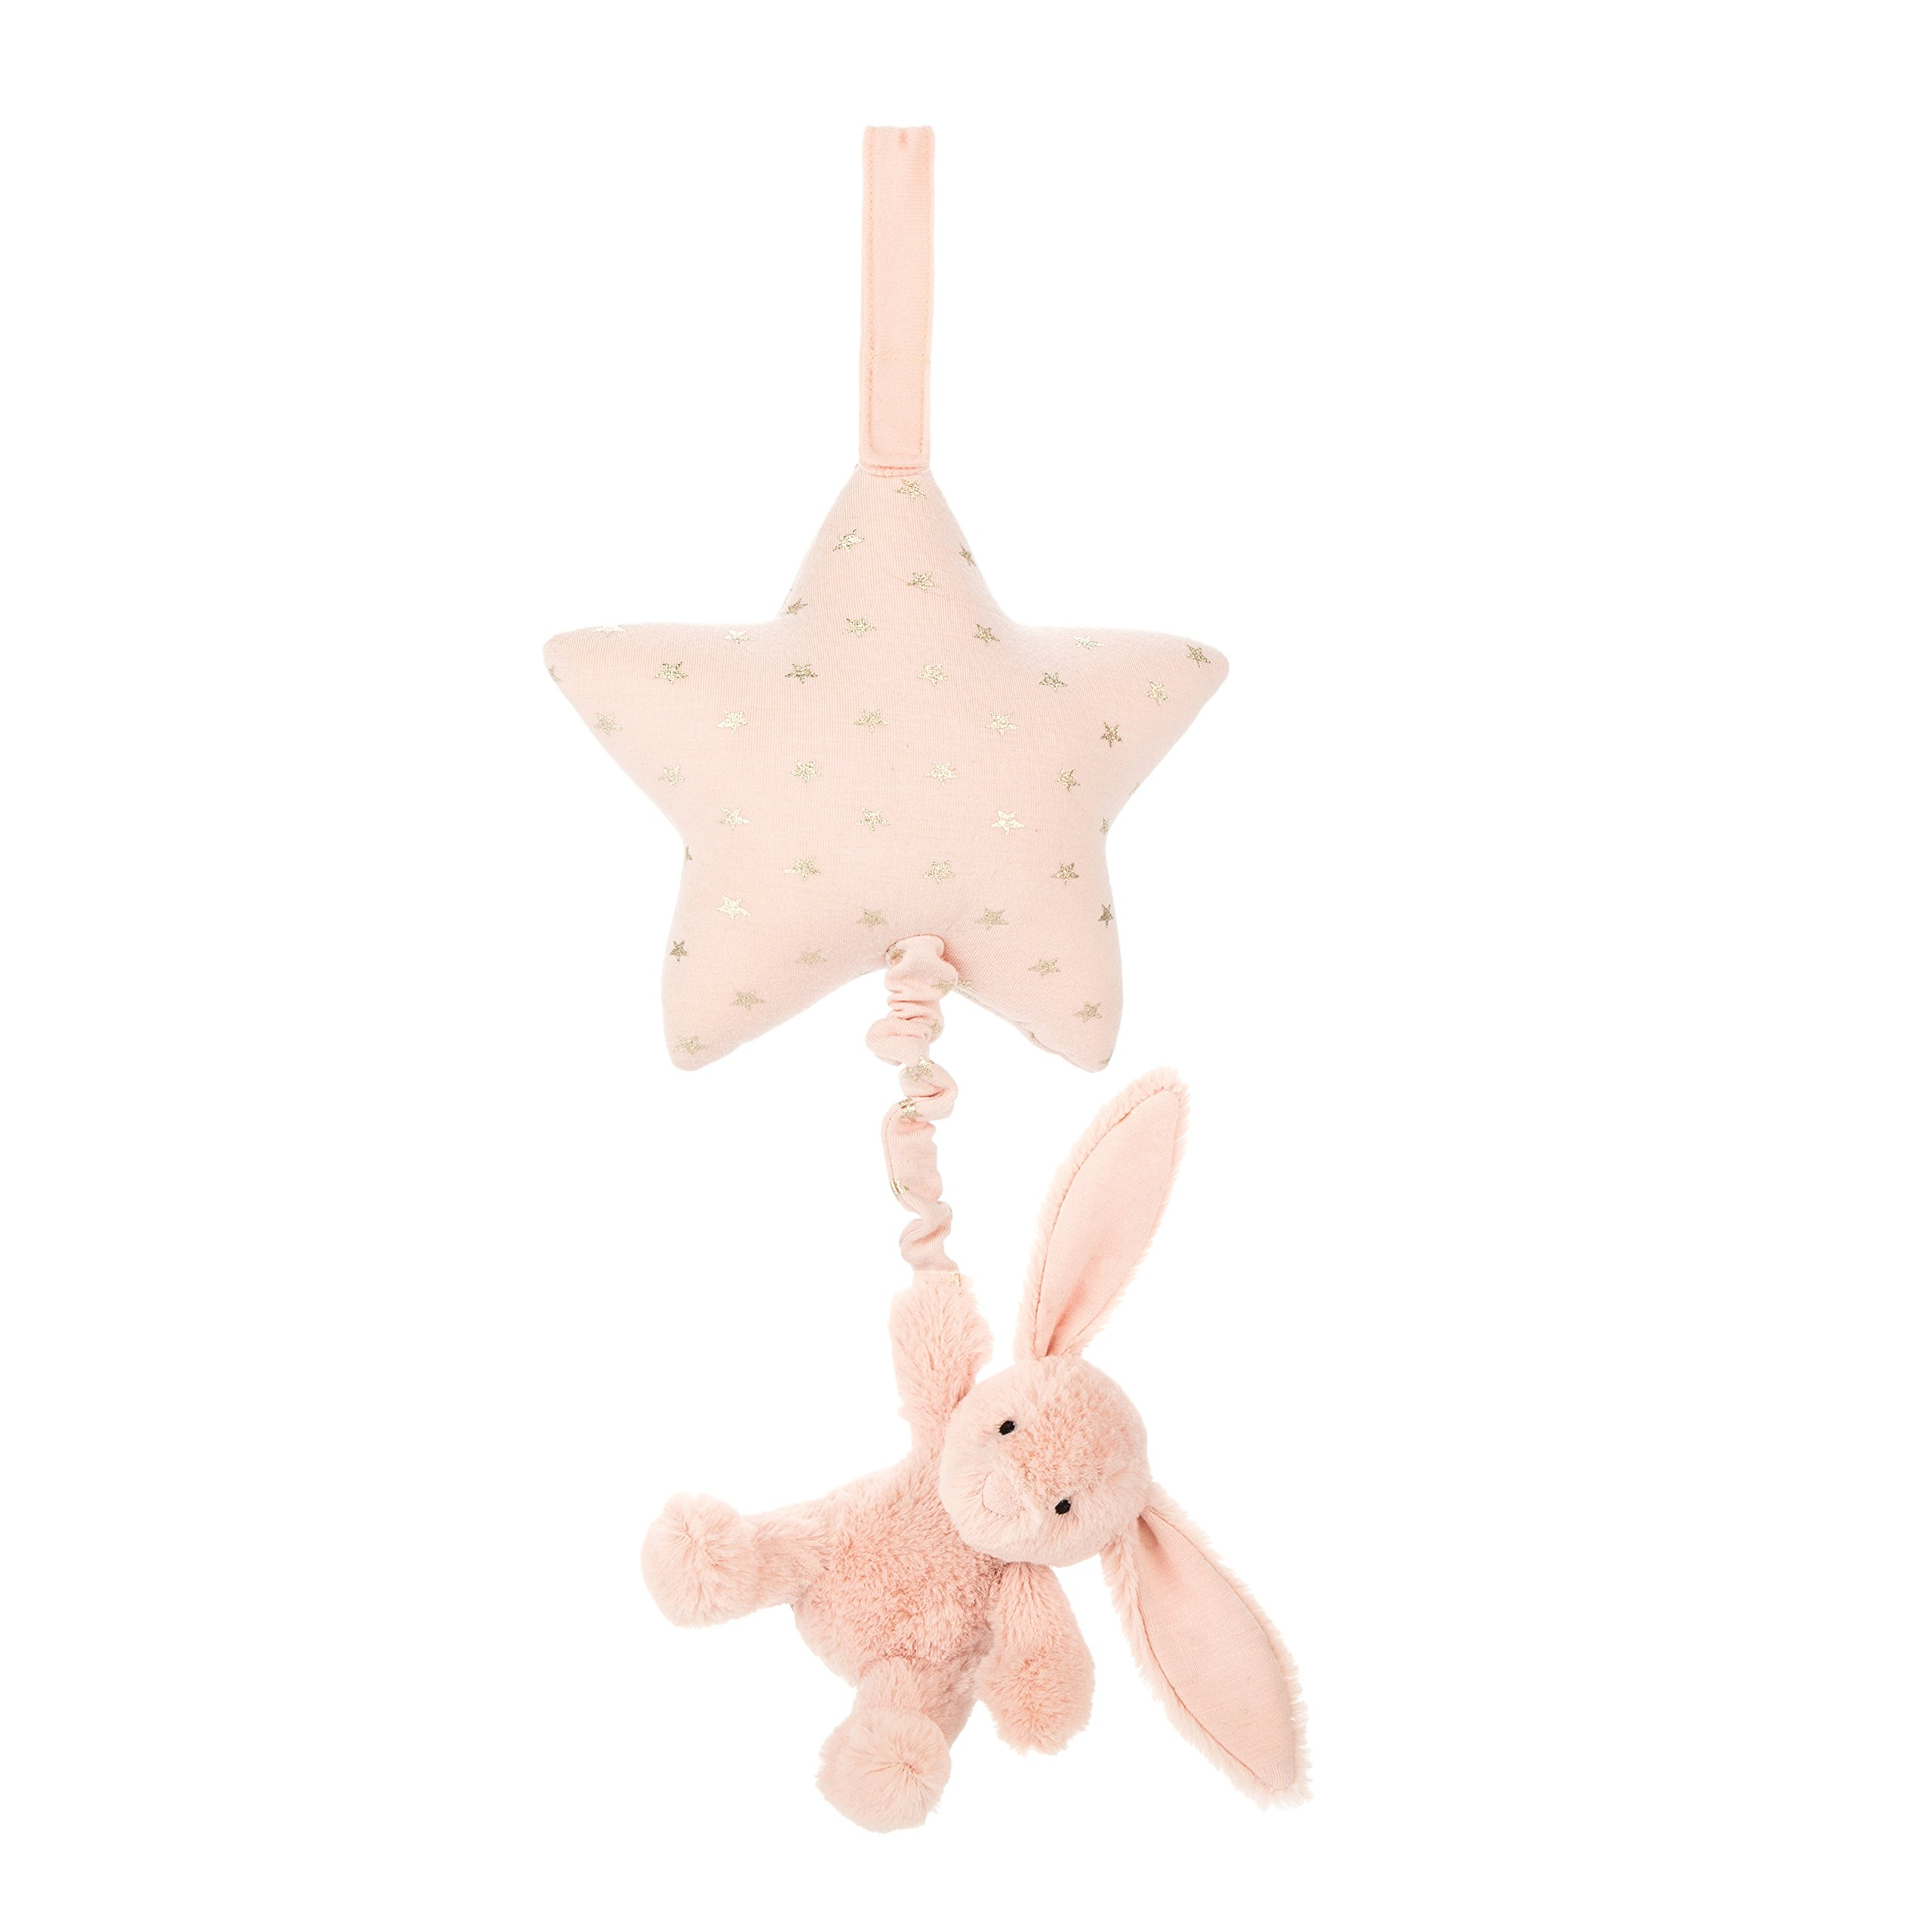 Jellycat Bashful Blush Bunny Musical Pull Baby Toy, 12 inches